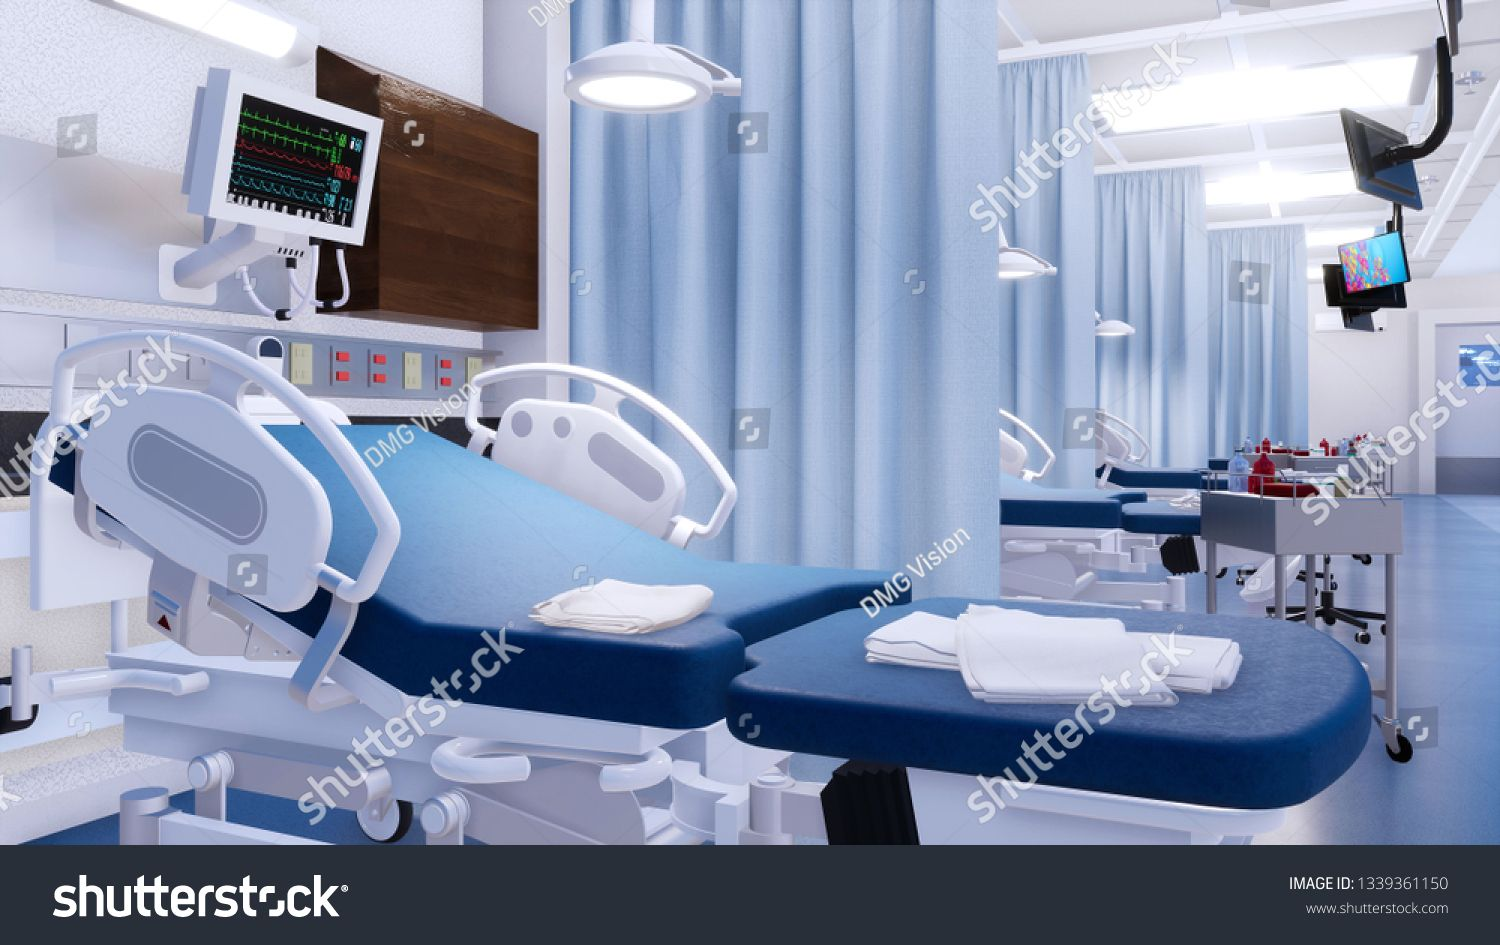 Closeup of empty hospital bed and various first aid